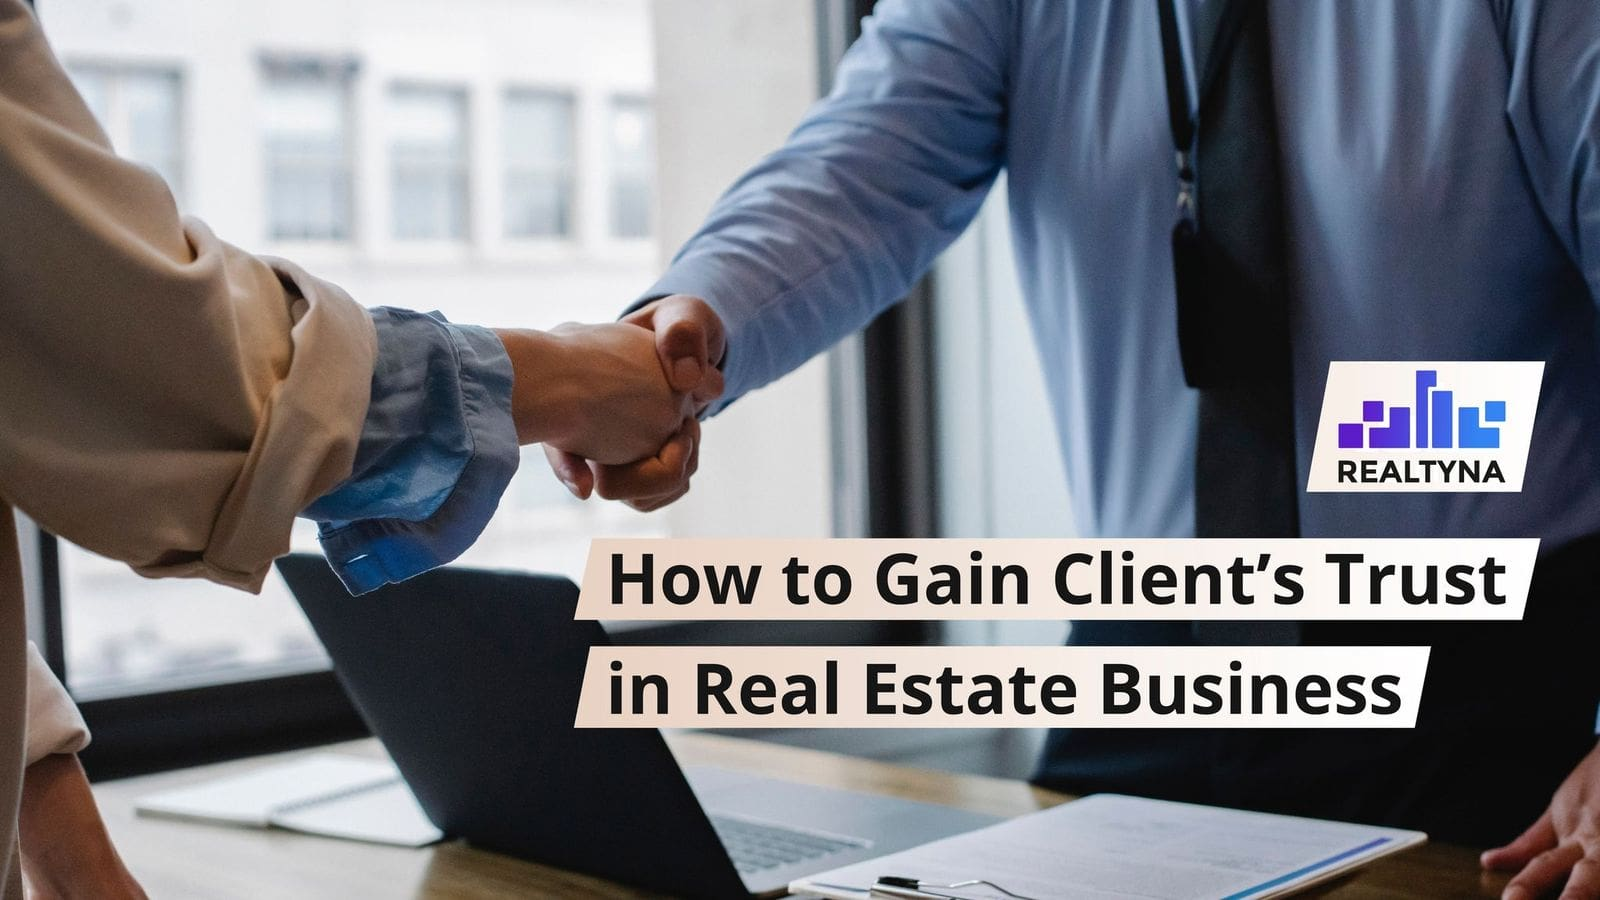 How to Gain Client's Trust in Real Estate Business